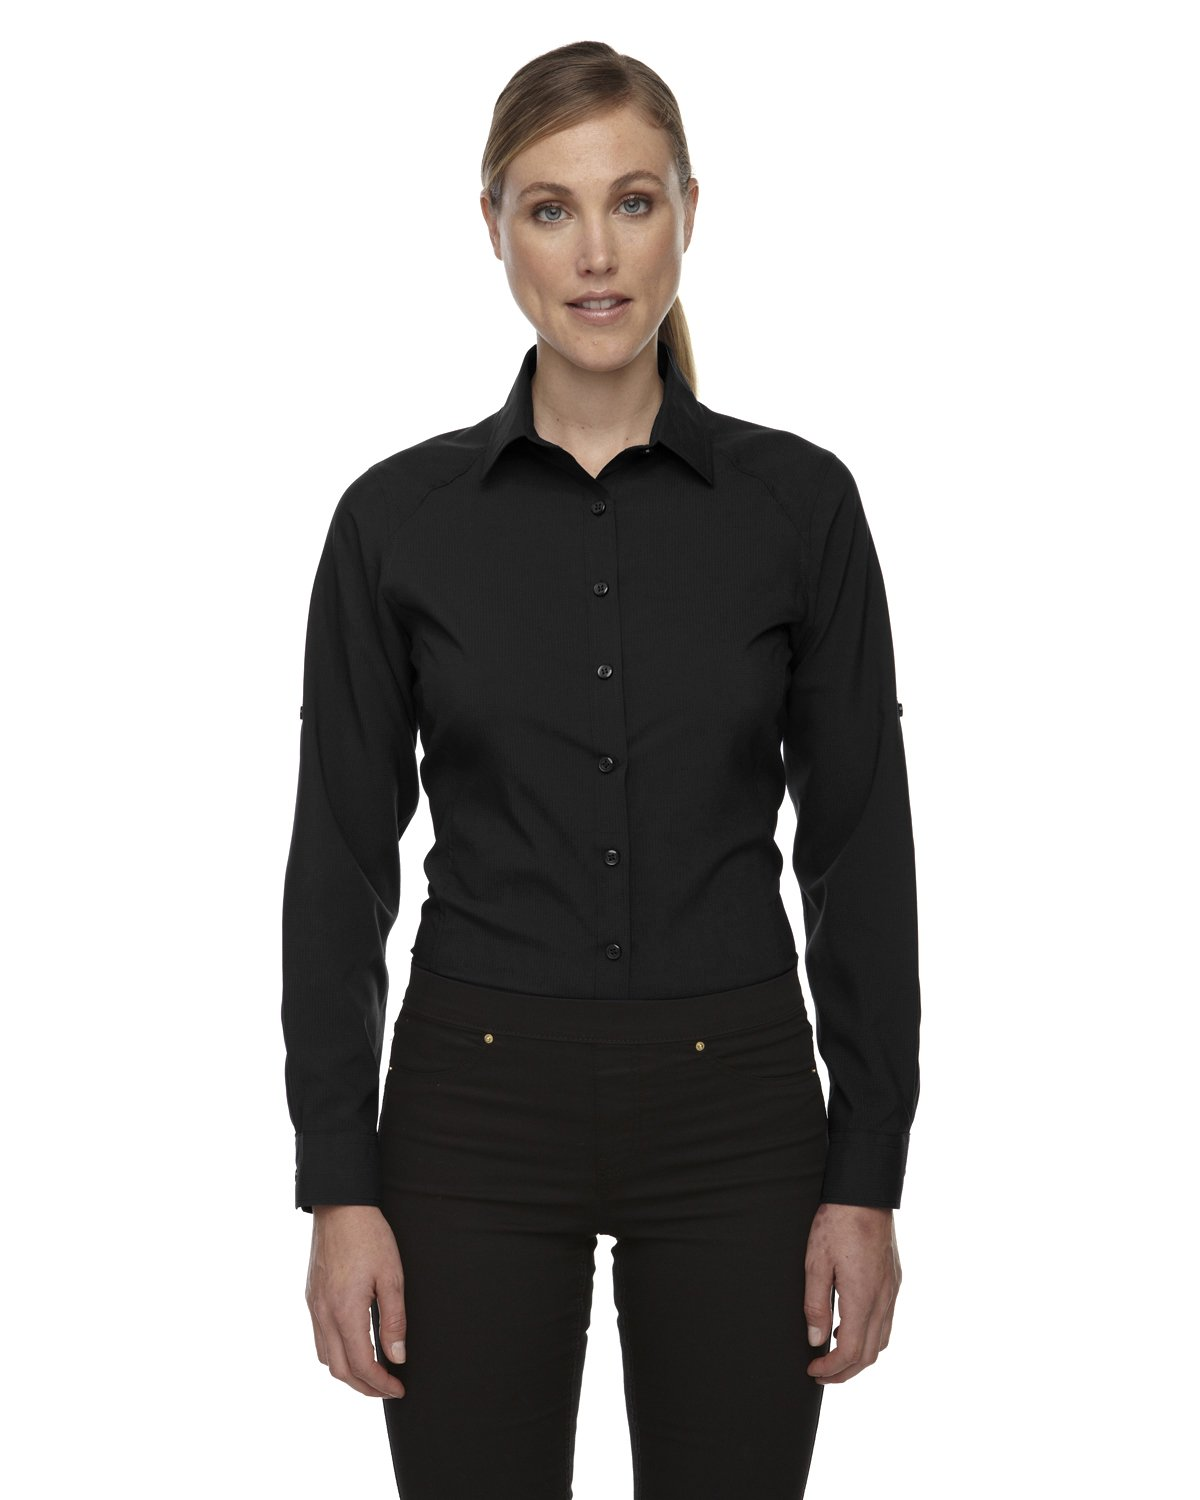 Ash City Apparel North End Sport Rejuvenate Ladies Performance Shirts with Roll-Up Sleeves (Small, Black)